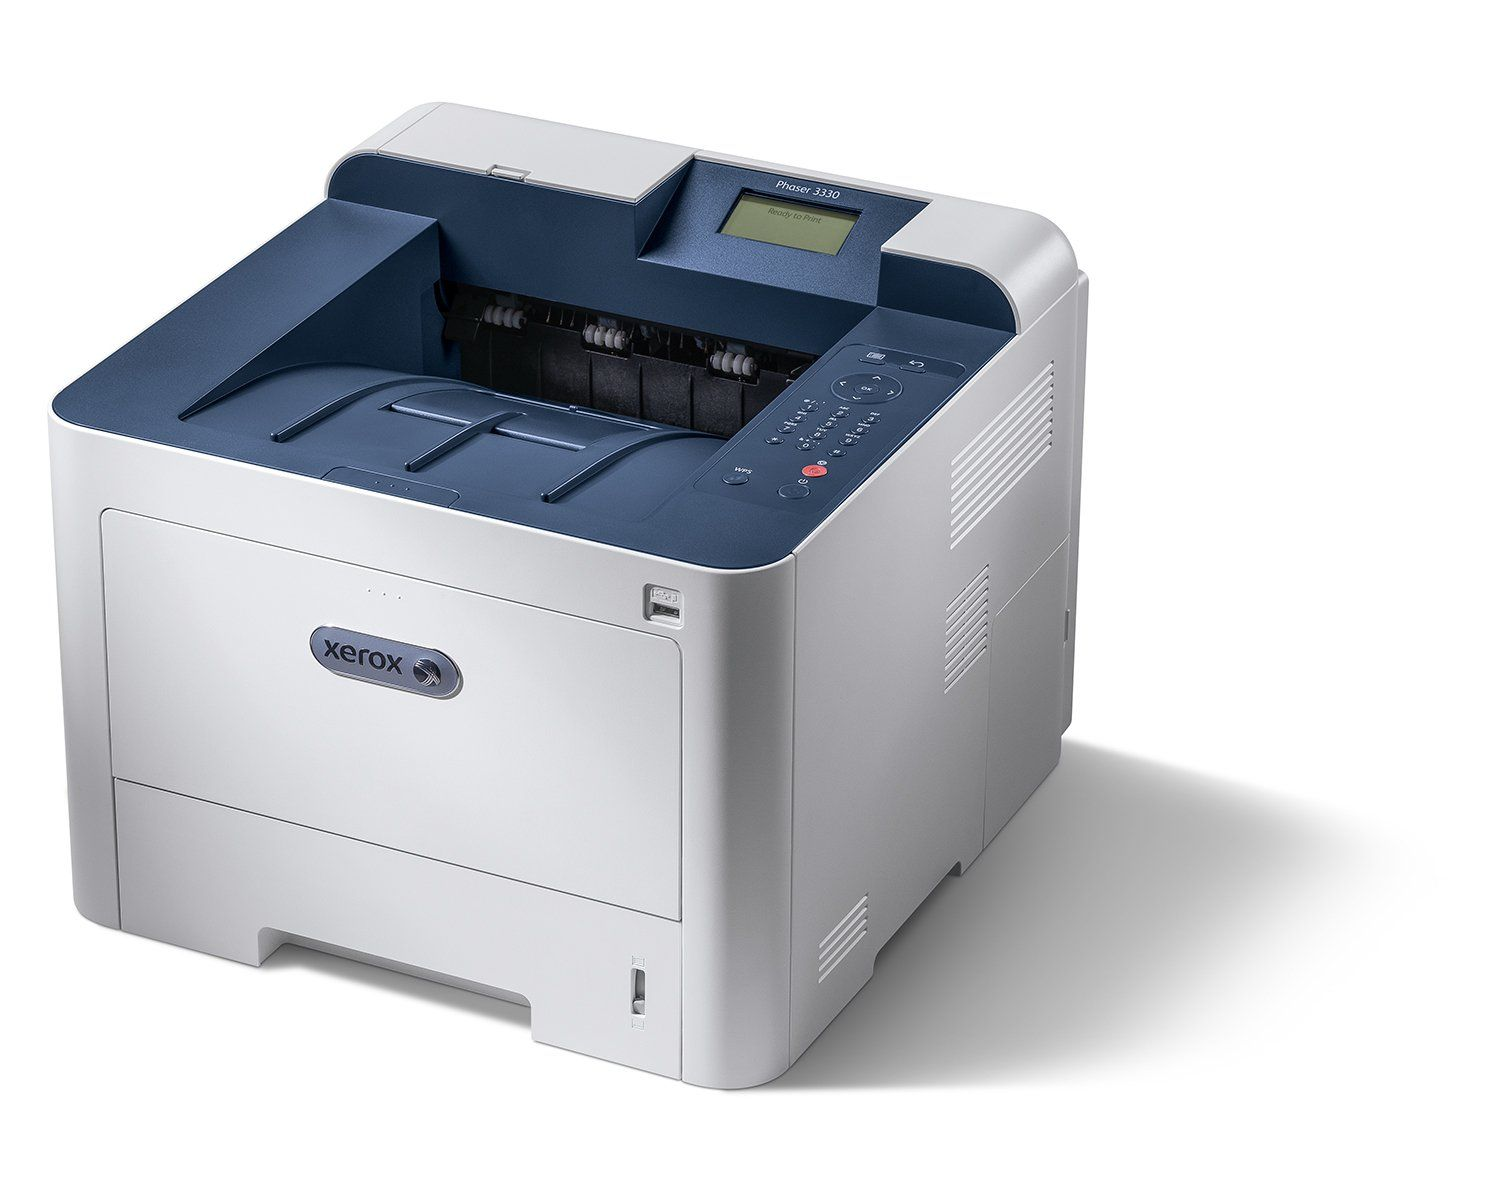 Xerox Phaser 3330 Black And White Printer Monochrome 3330 Dnim In